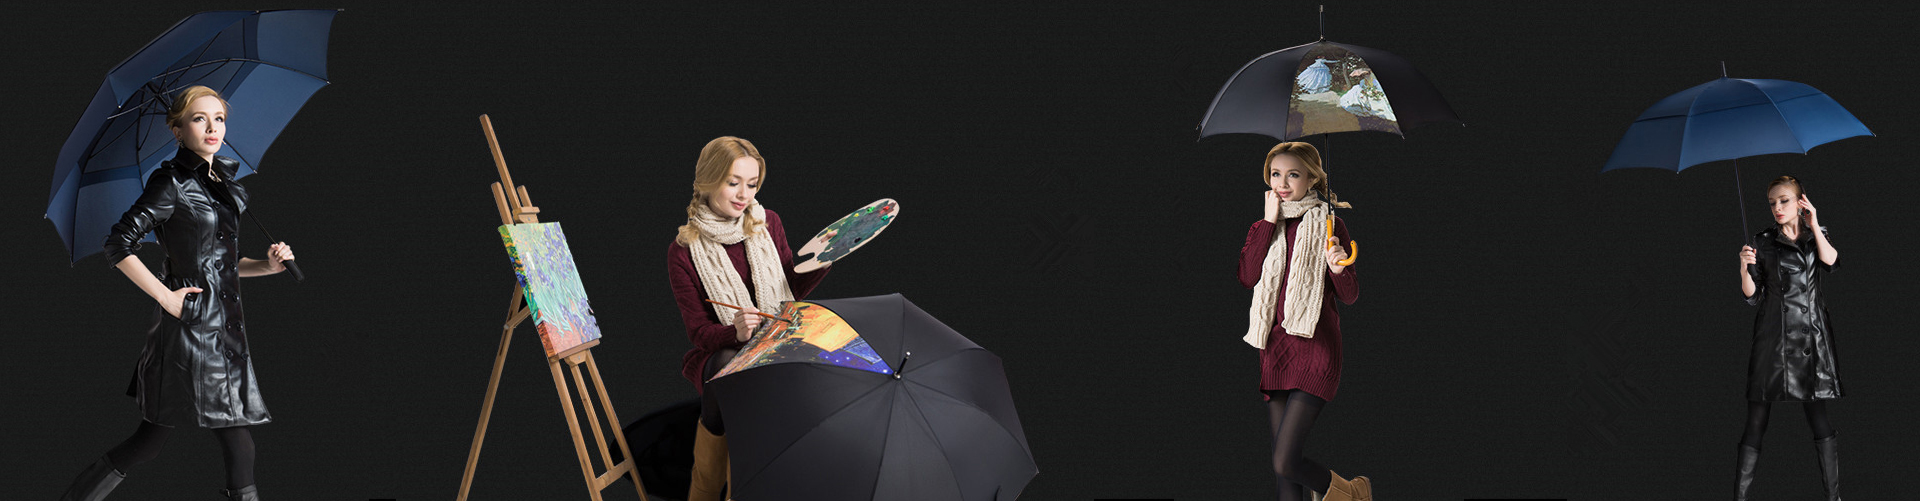 Huifeng Umbrellas